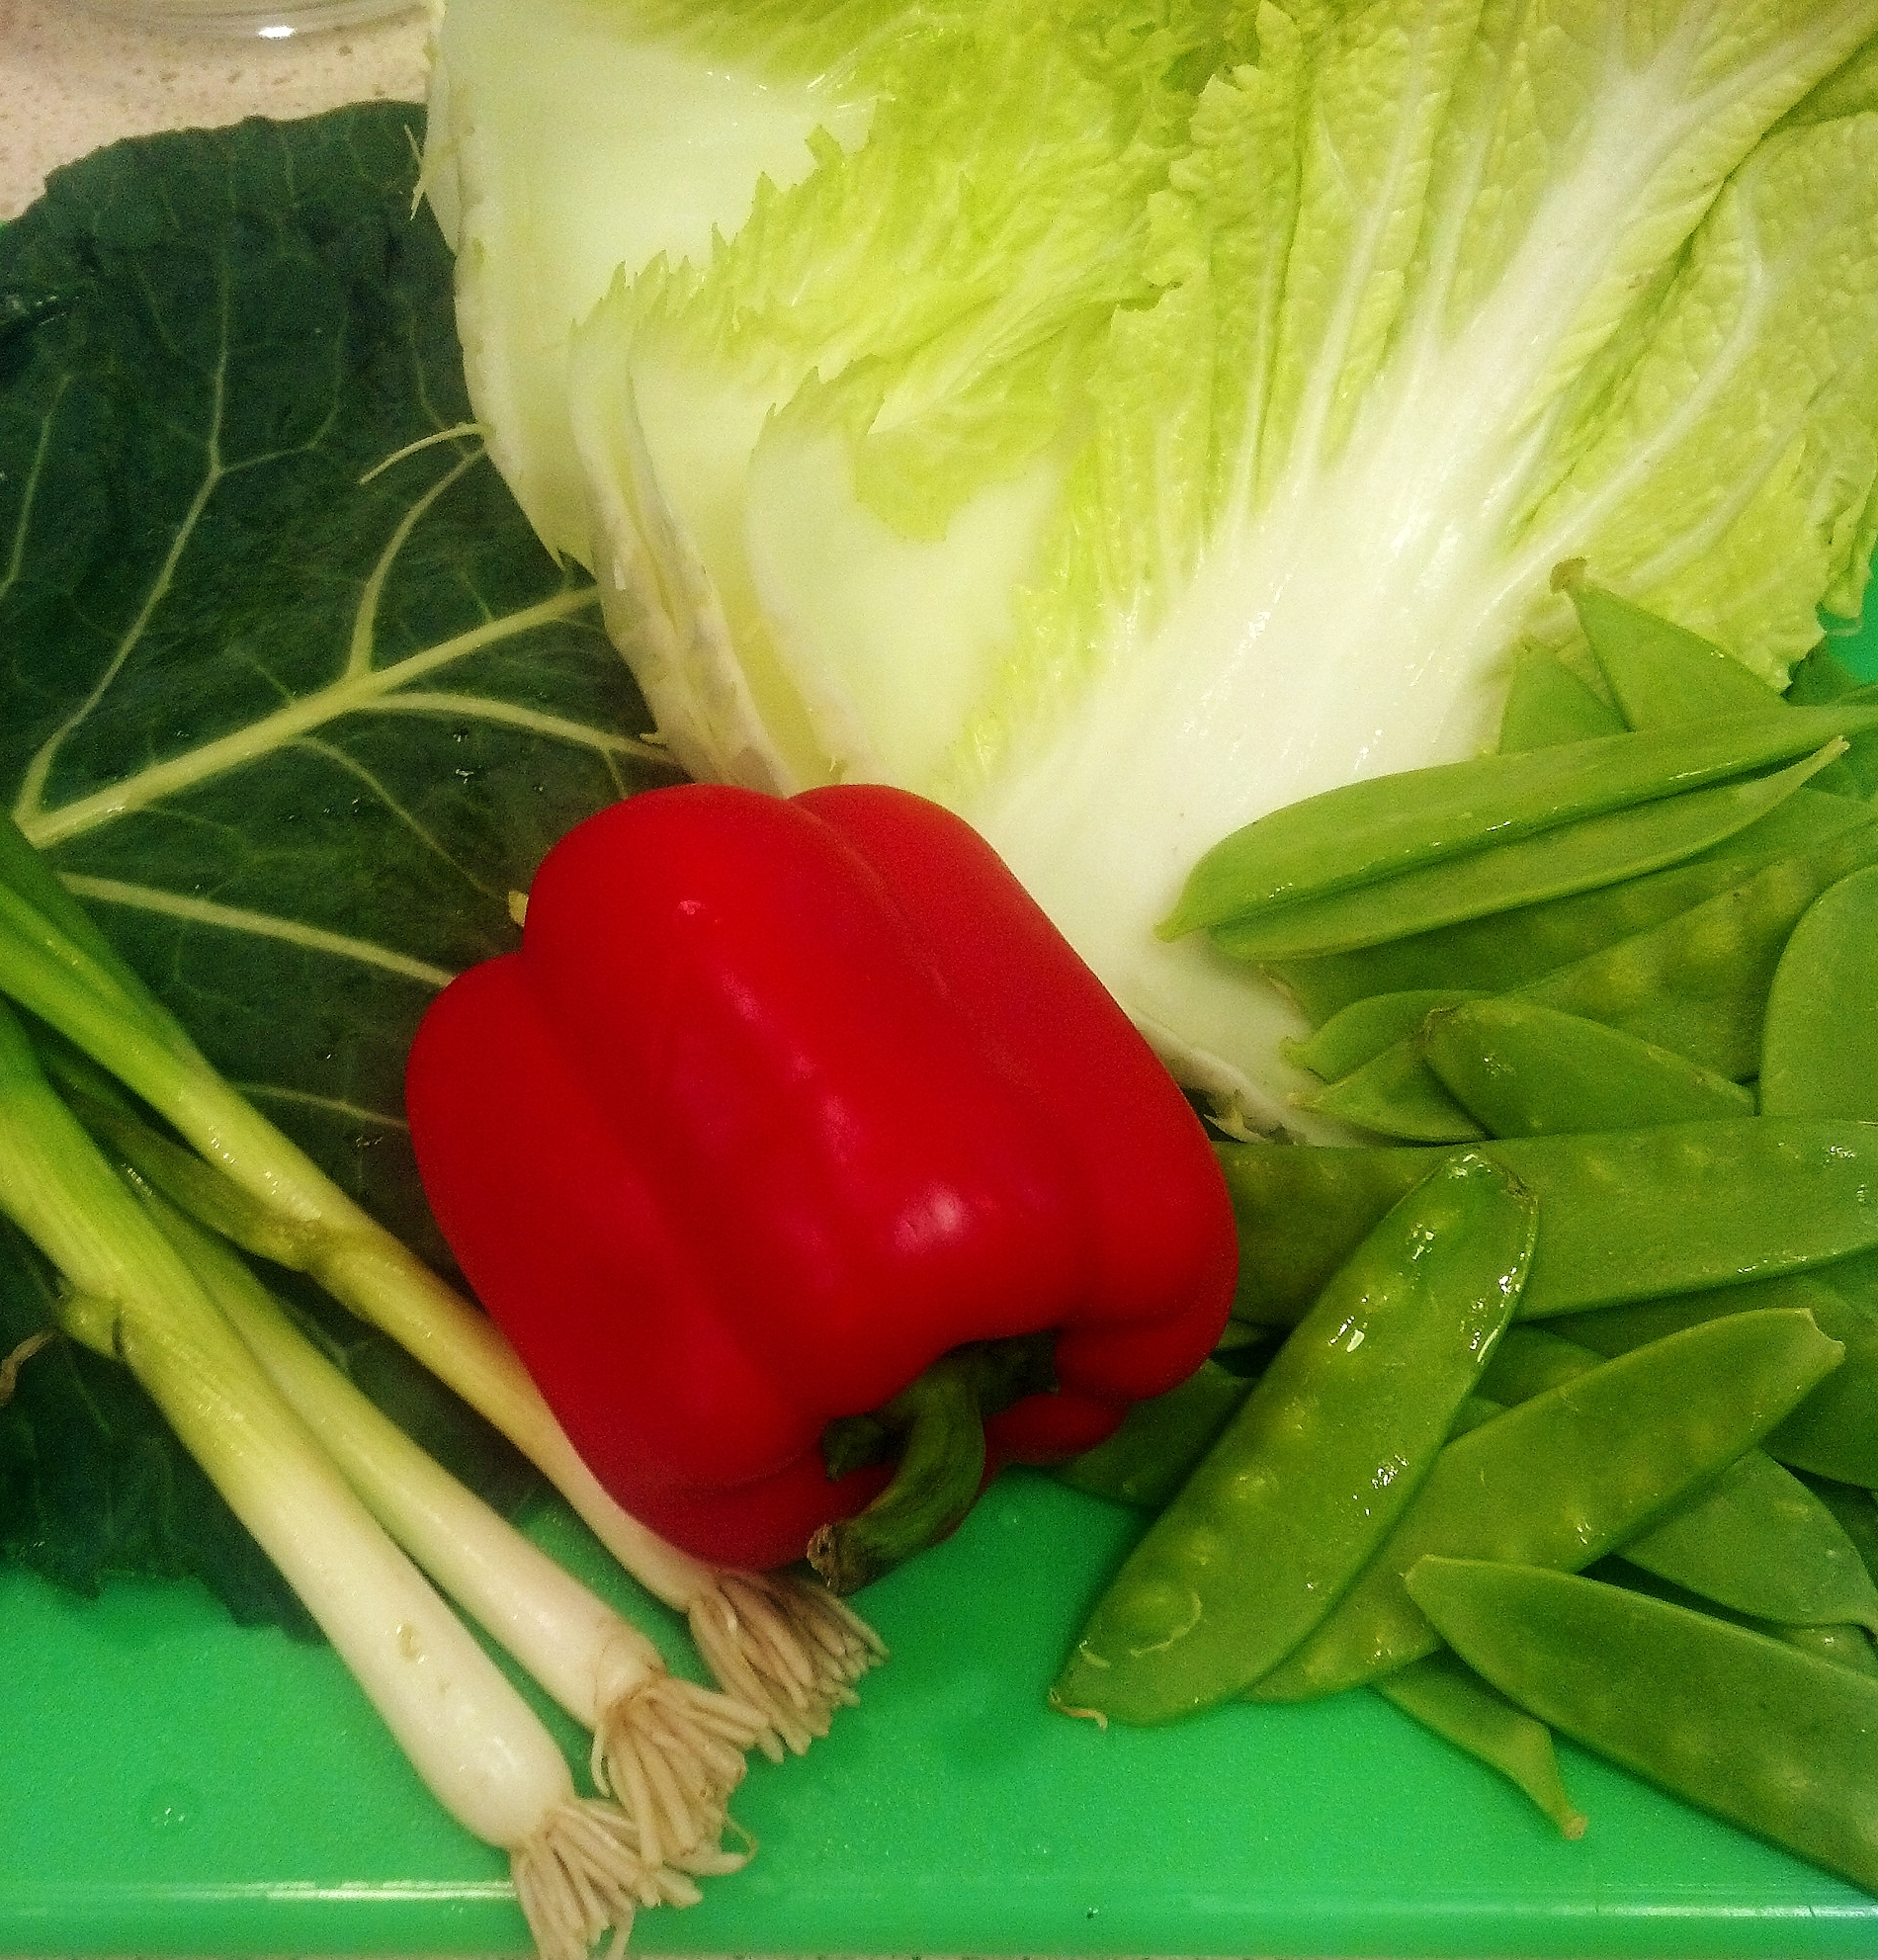 Collard greens, Napa cabbage, red bell peppers, snow peas and scallions ready to julienne for salad